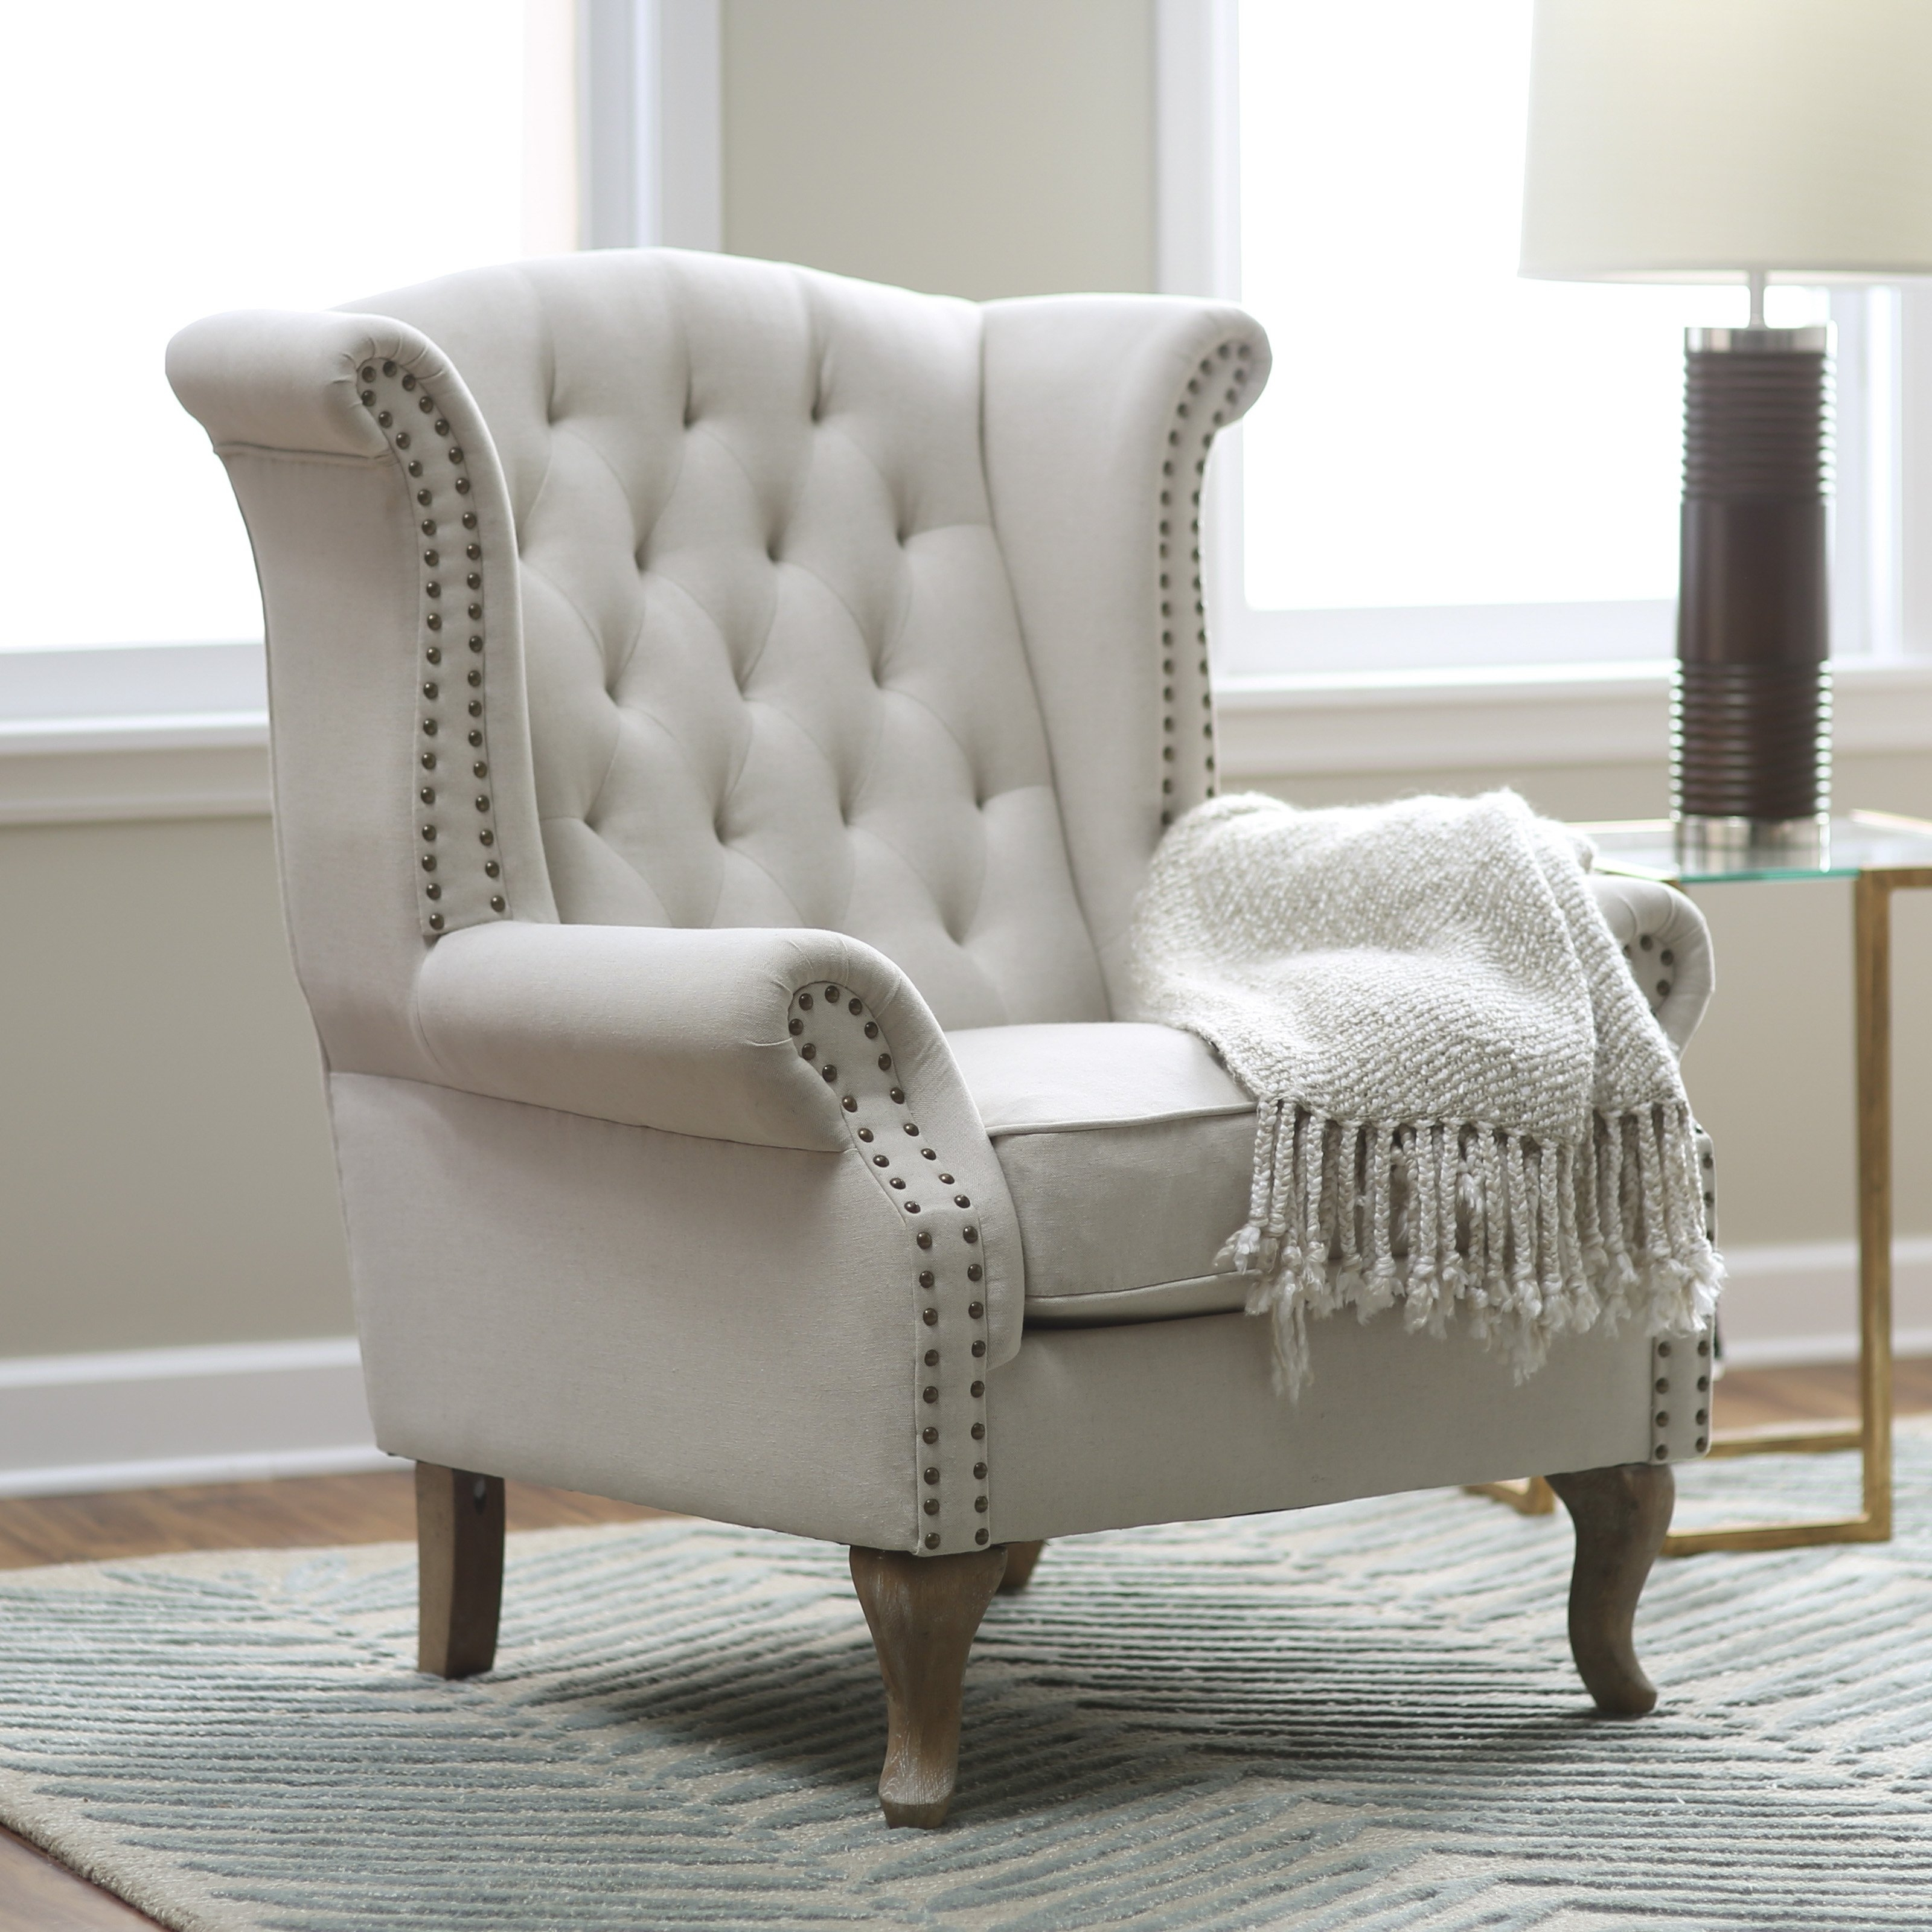 Well Known Chairs : Upholstered Accent Chairs Living Room Ideas With Stunning Throughout Sofa Arm Chairs (View 14 of 15)